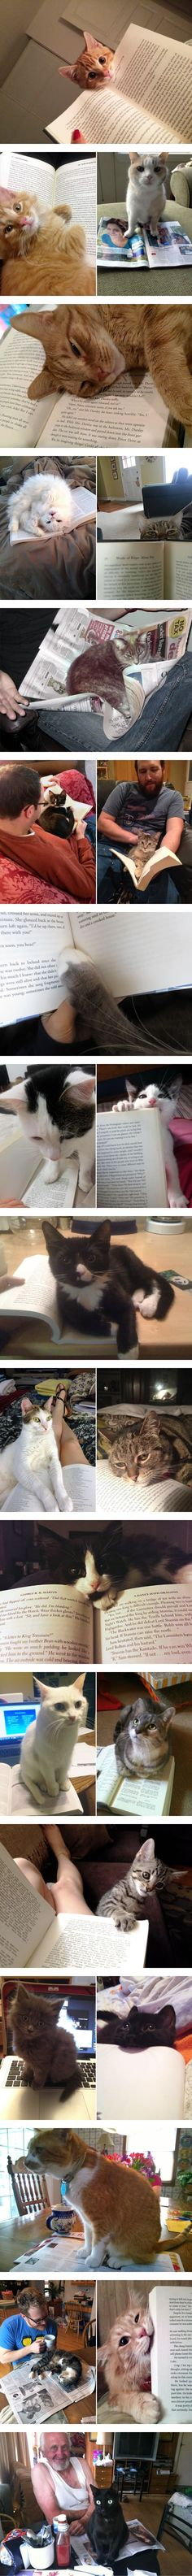 Cats won't let you read